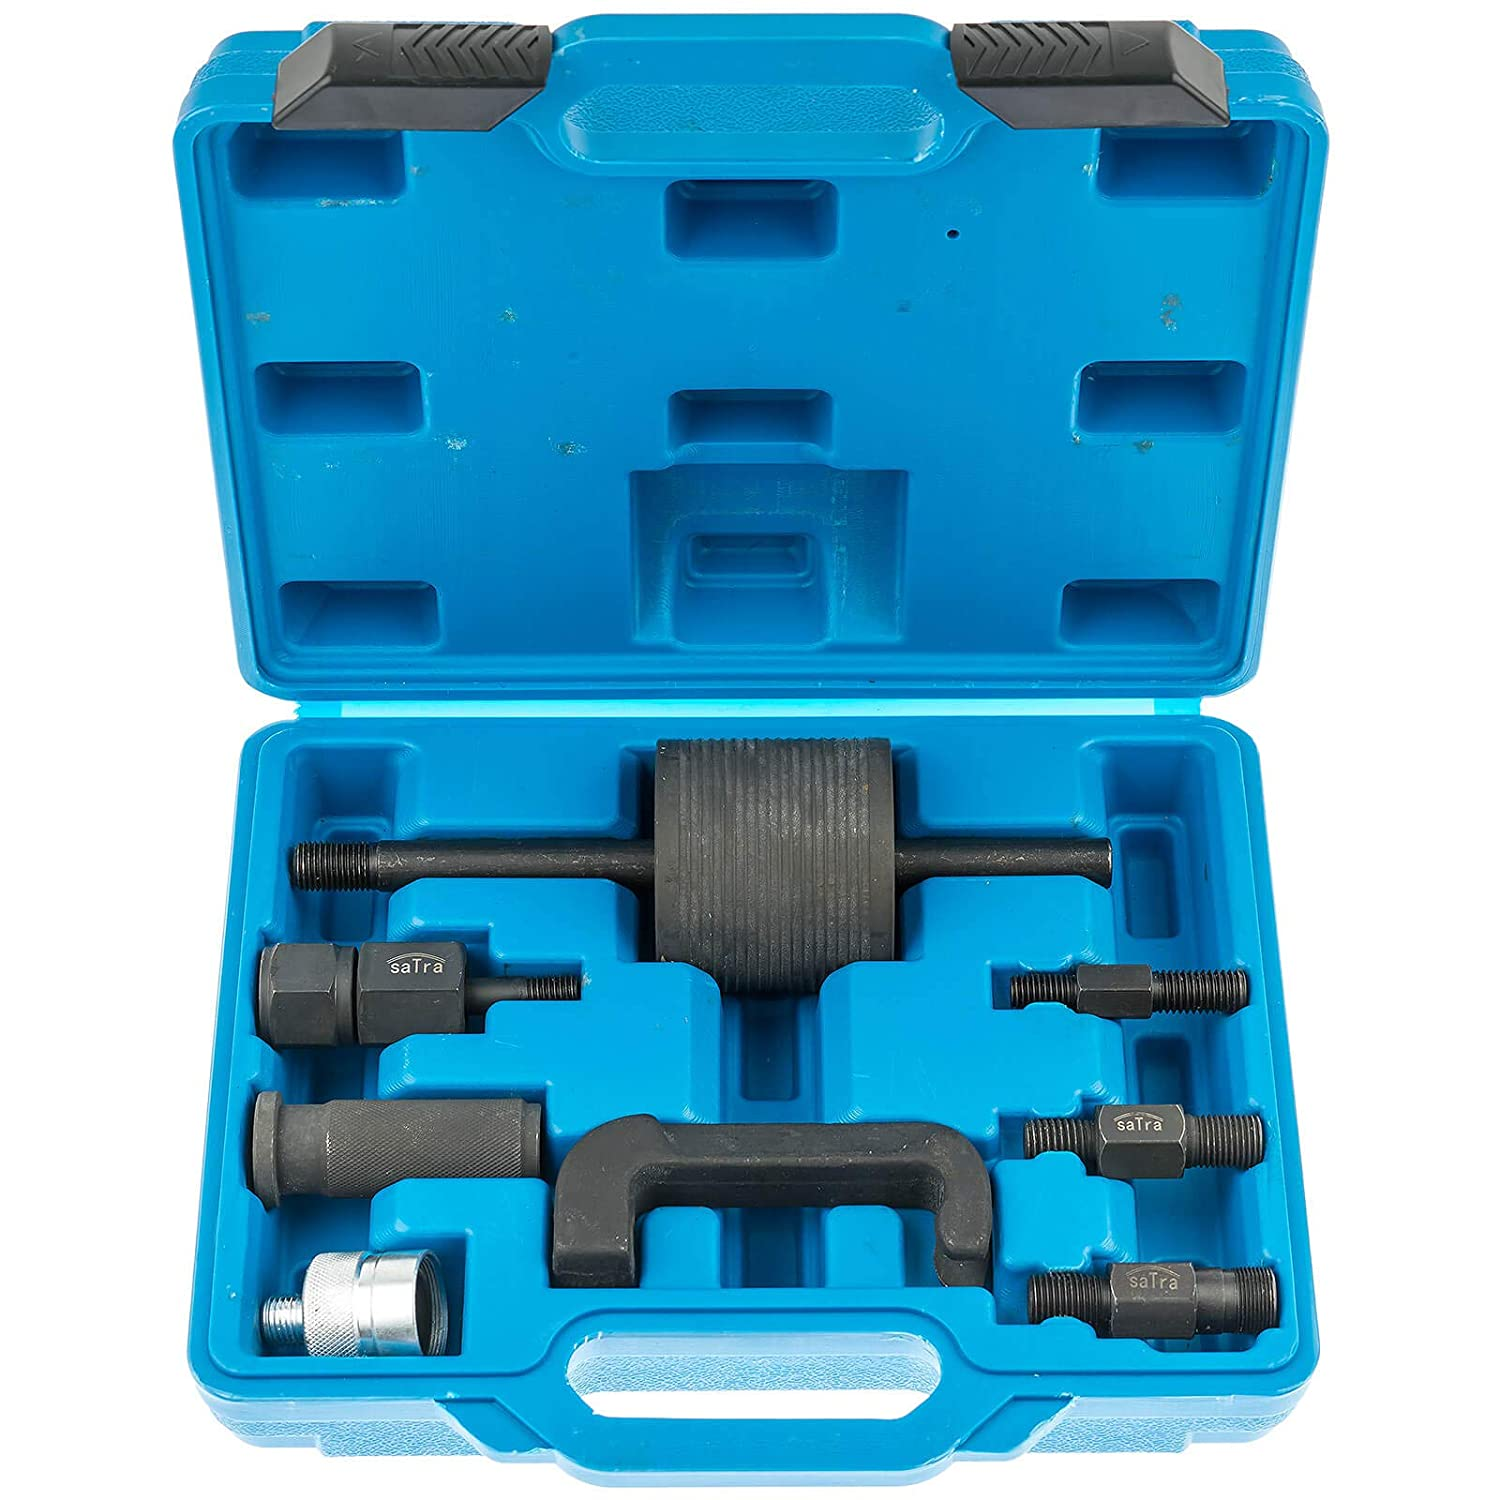 SATRA S-IES9 Common Rail Injector Extractor Diesel Puller Bosch Set CDI Mercedes